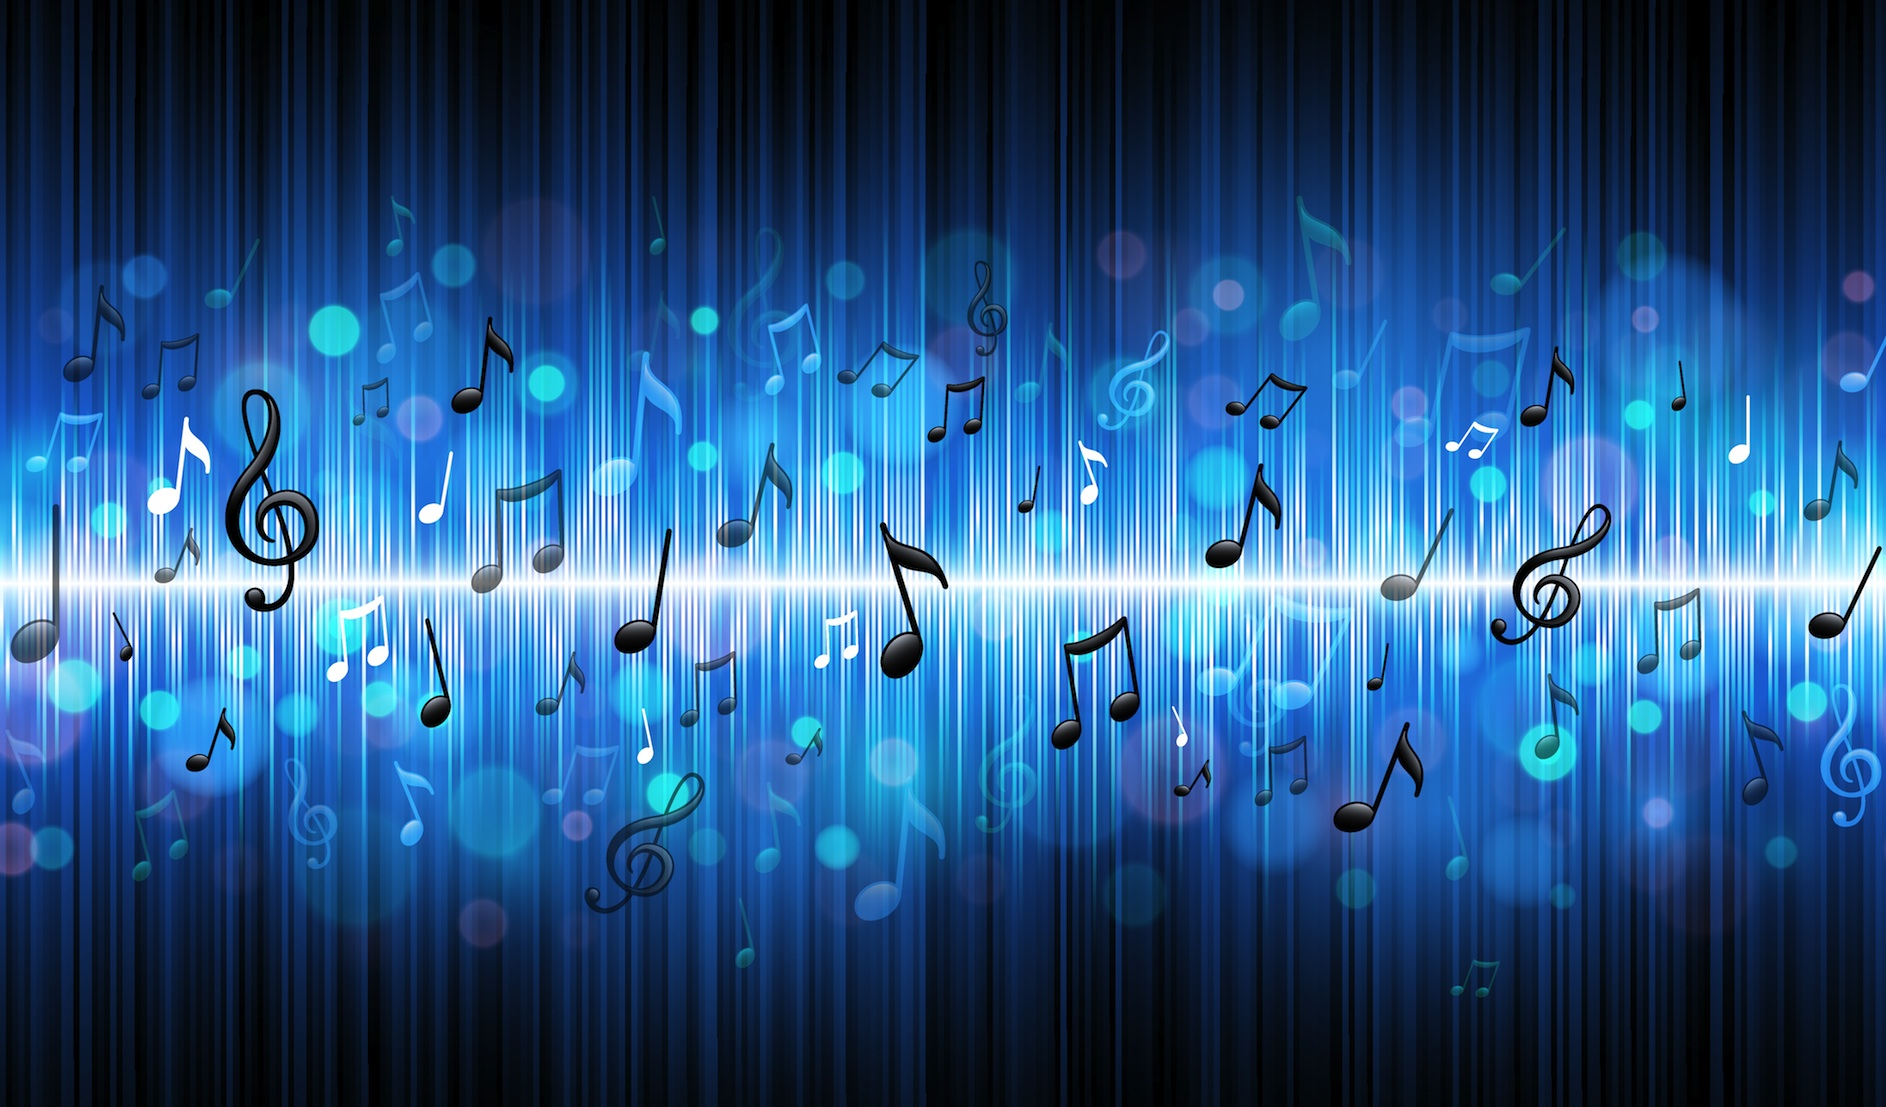 HD Music Notes Wallpaper | Full HD Pictures